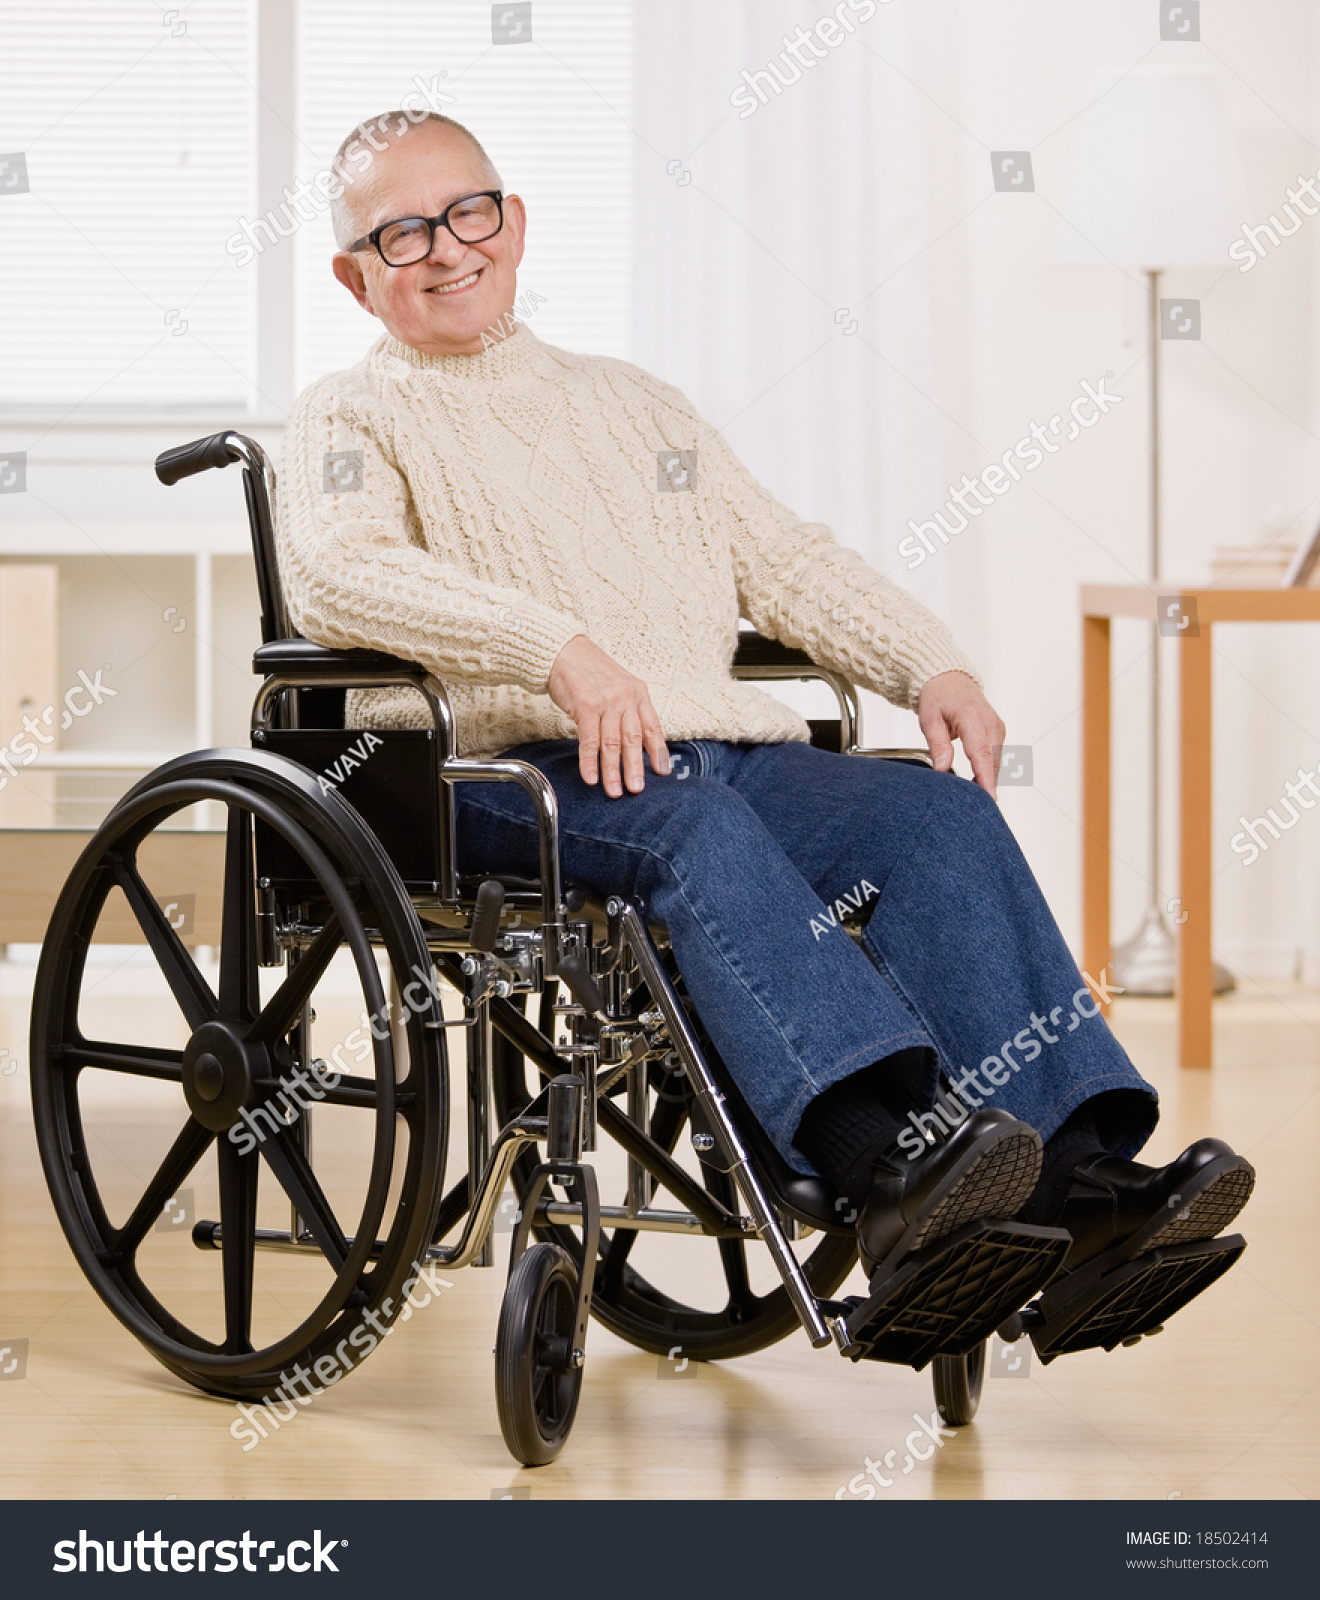 Happy Disabled Man Wheelchair Stock Photo 18502414